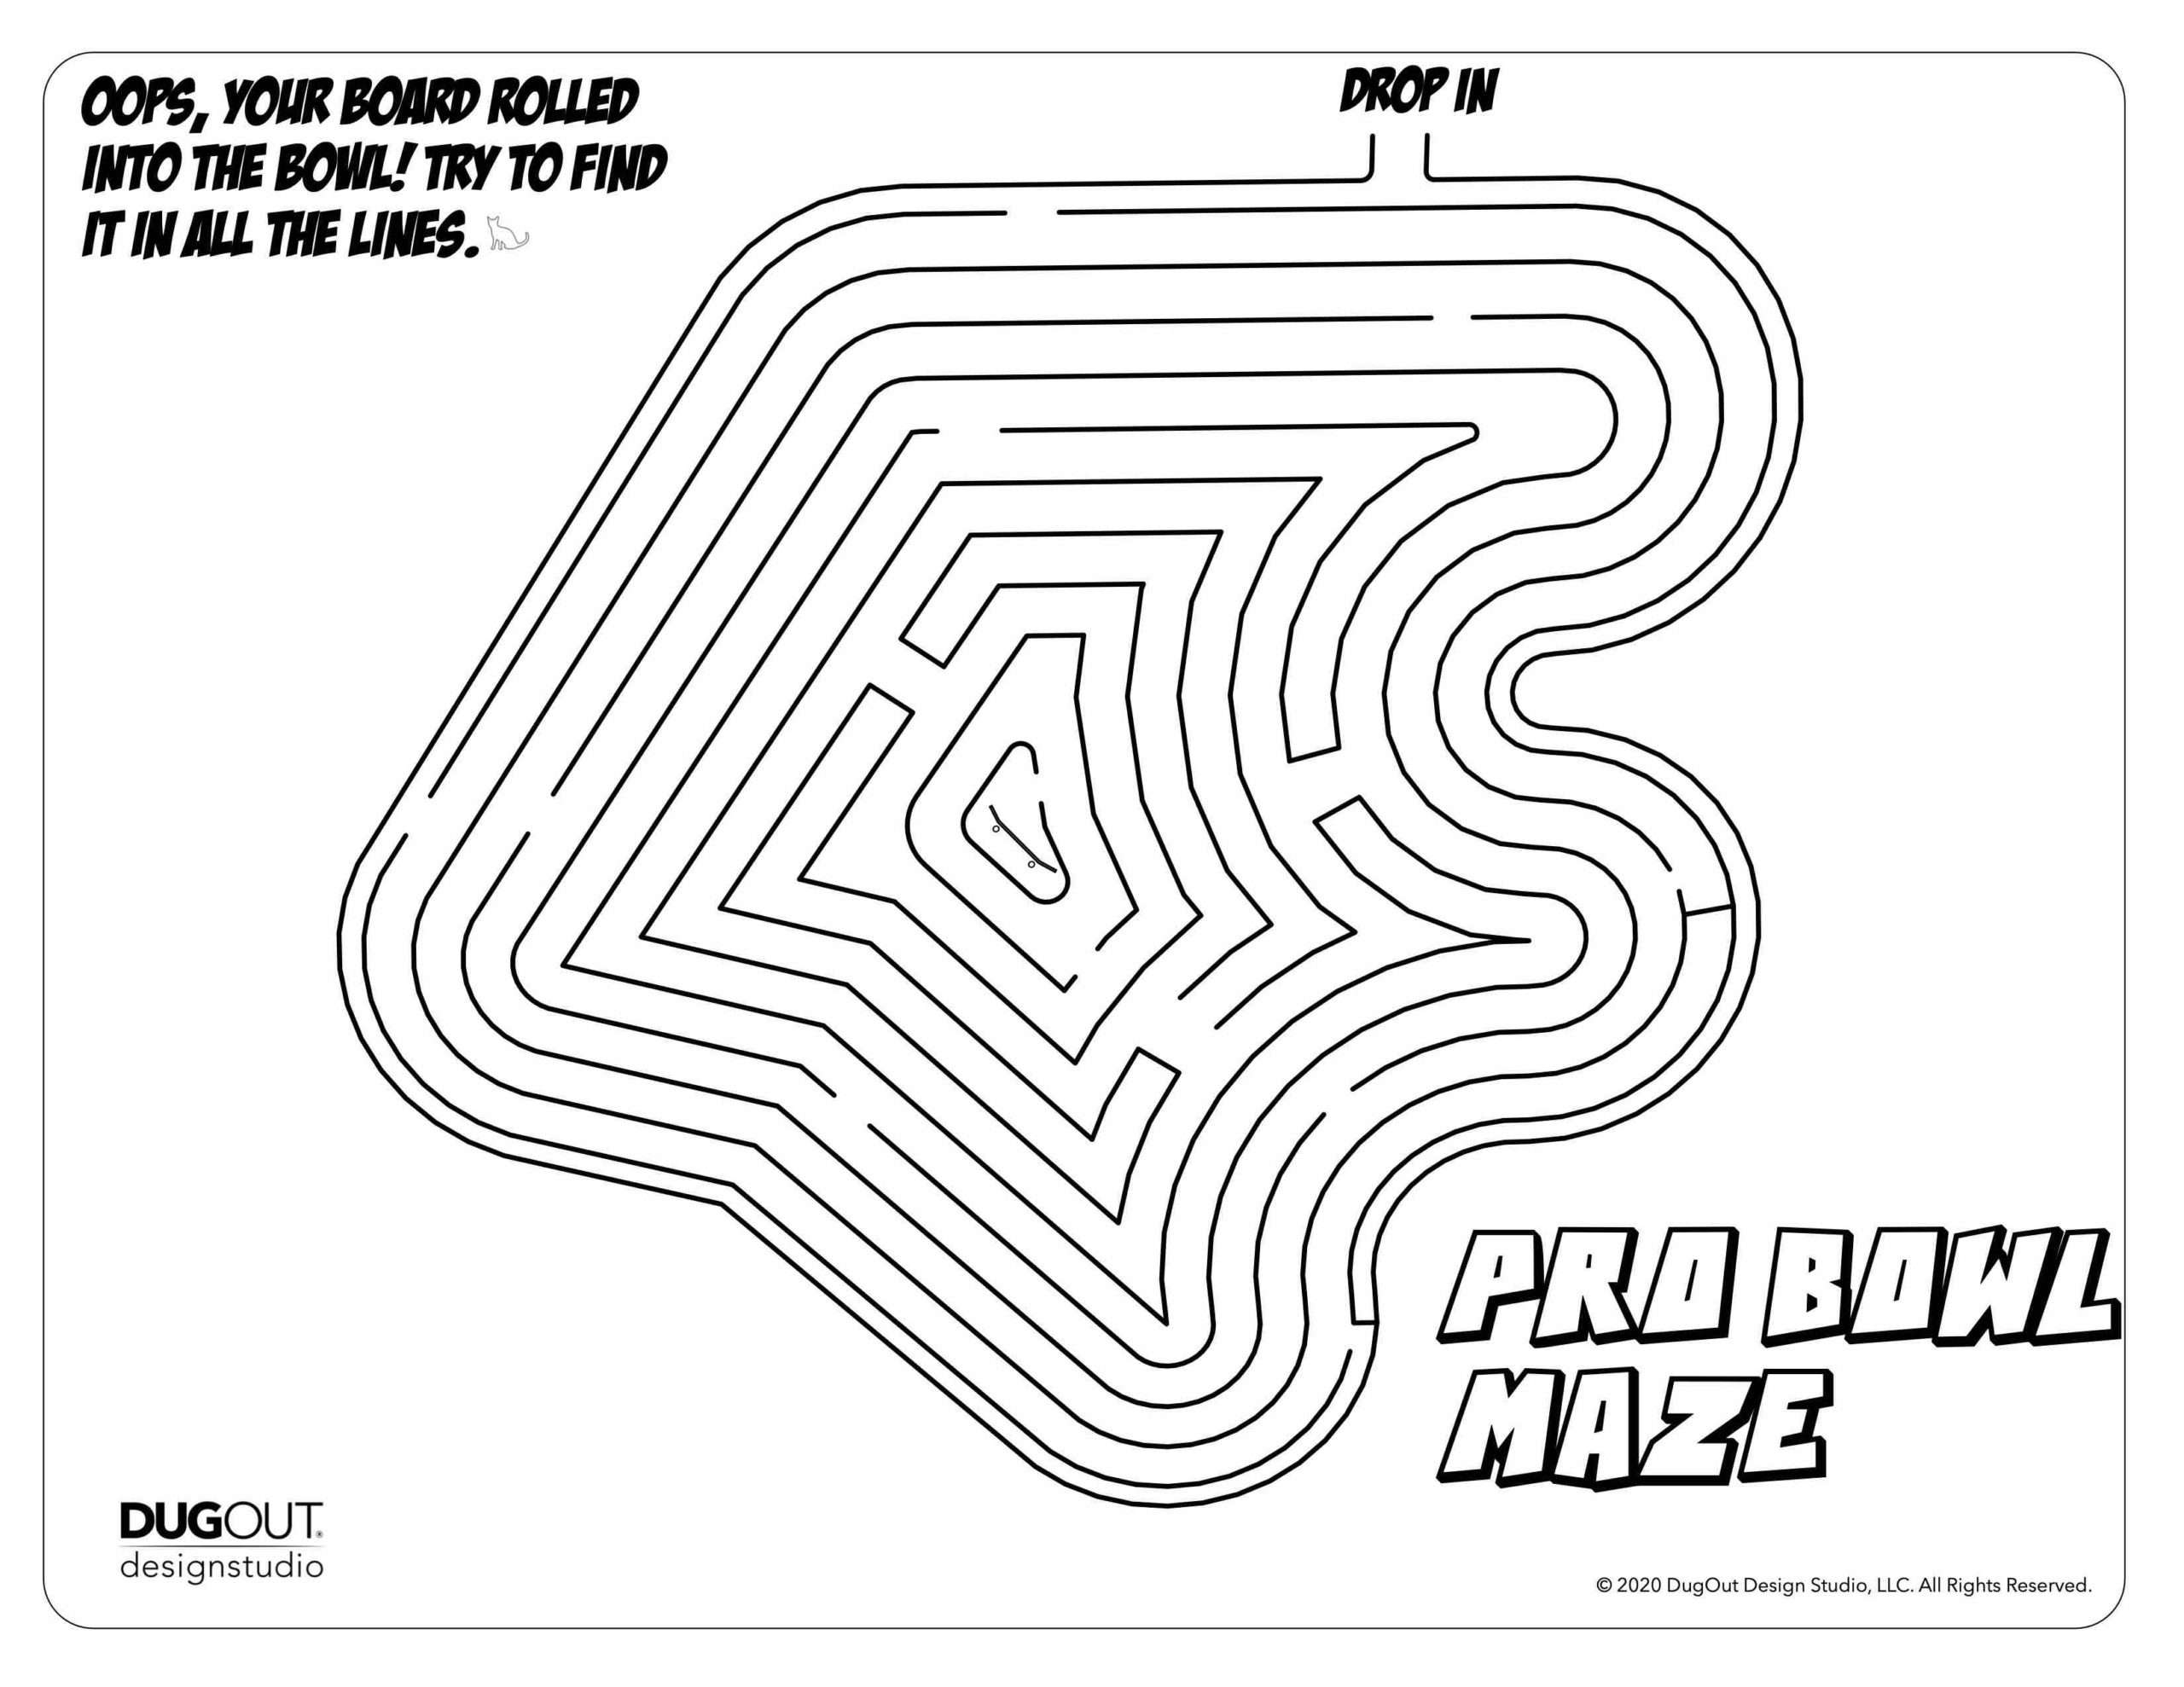 Pro Maze page in Skatepark Design Activity Book